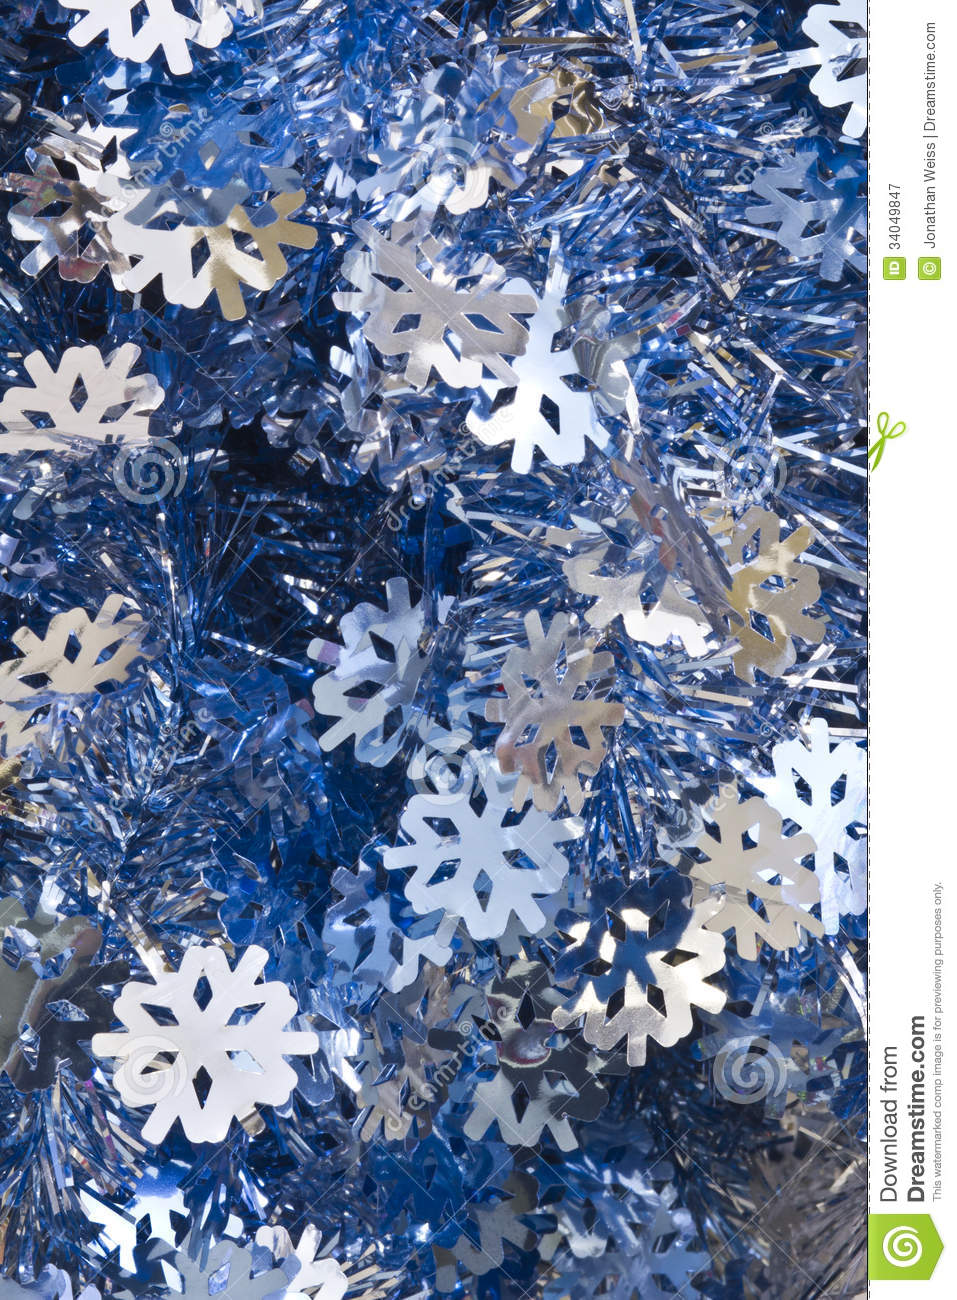 Blue And Silver Decoration Living Room: Blue And Silver Christmas Tinsel Royalty Free Stock